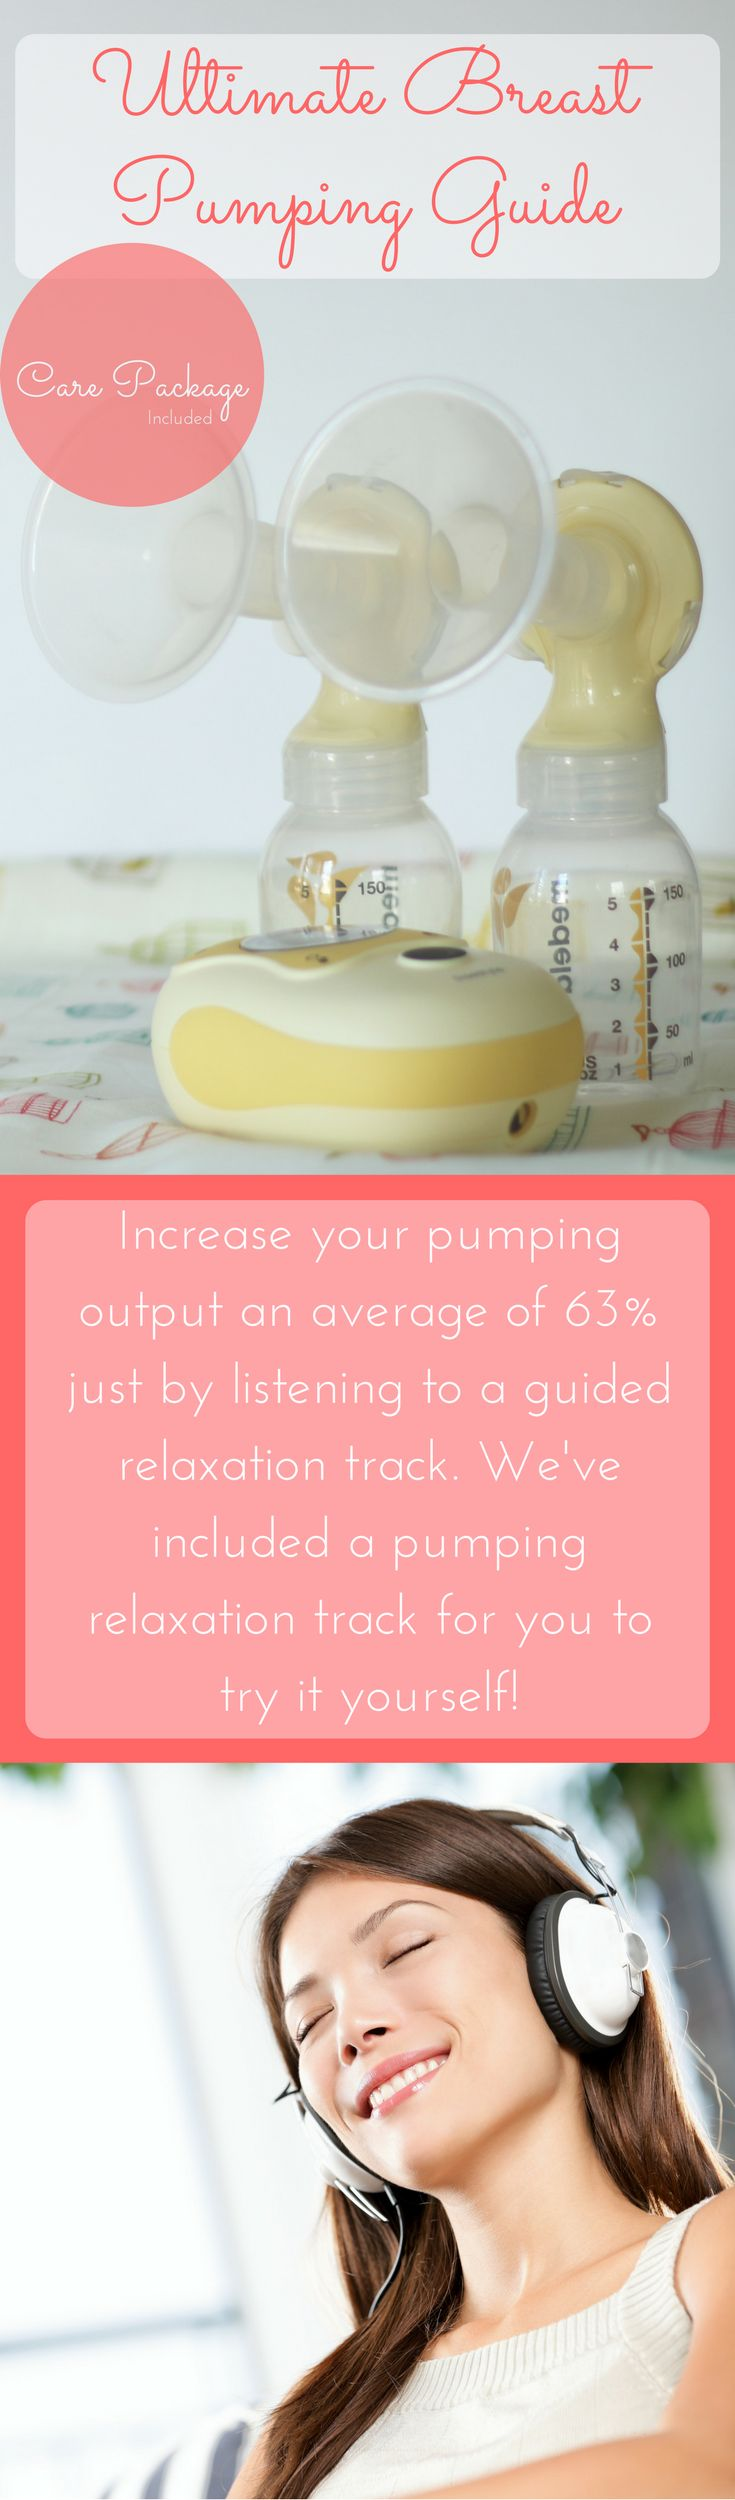 Download our free Relaxation for Breast Pumping mp3 and increase your pumping output. Plus - the ultimate breast pumping guide. This post covers everything you'll ever need to know about breast pumping. How to start, choosing the right breast pump, pumping schedules, increasing comfort and production, tips for pumping at work or while traveling, and more!